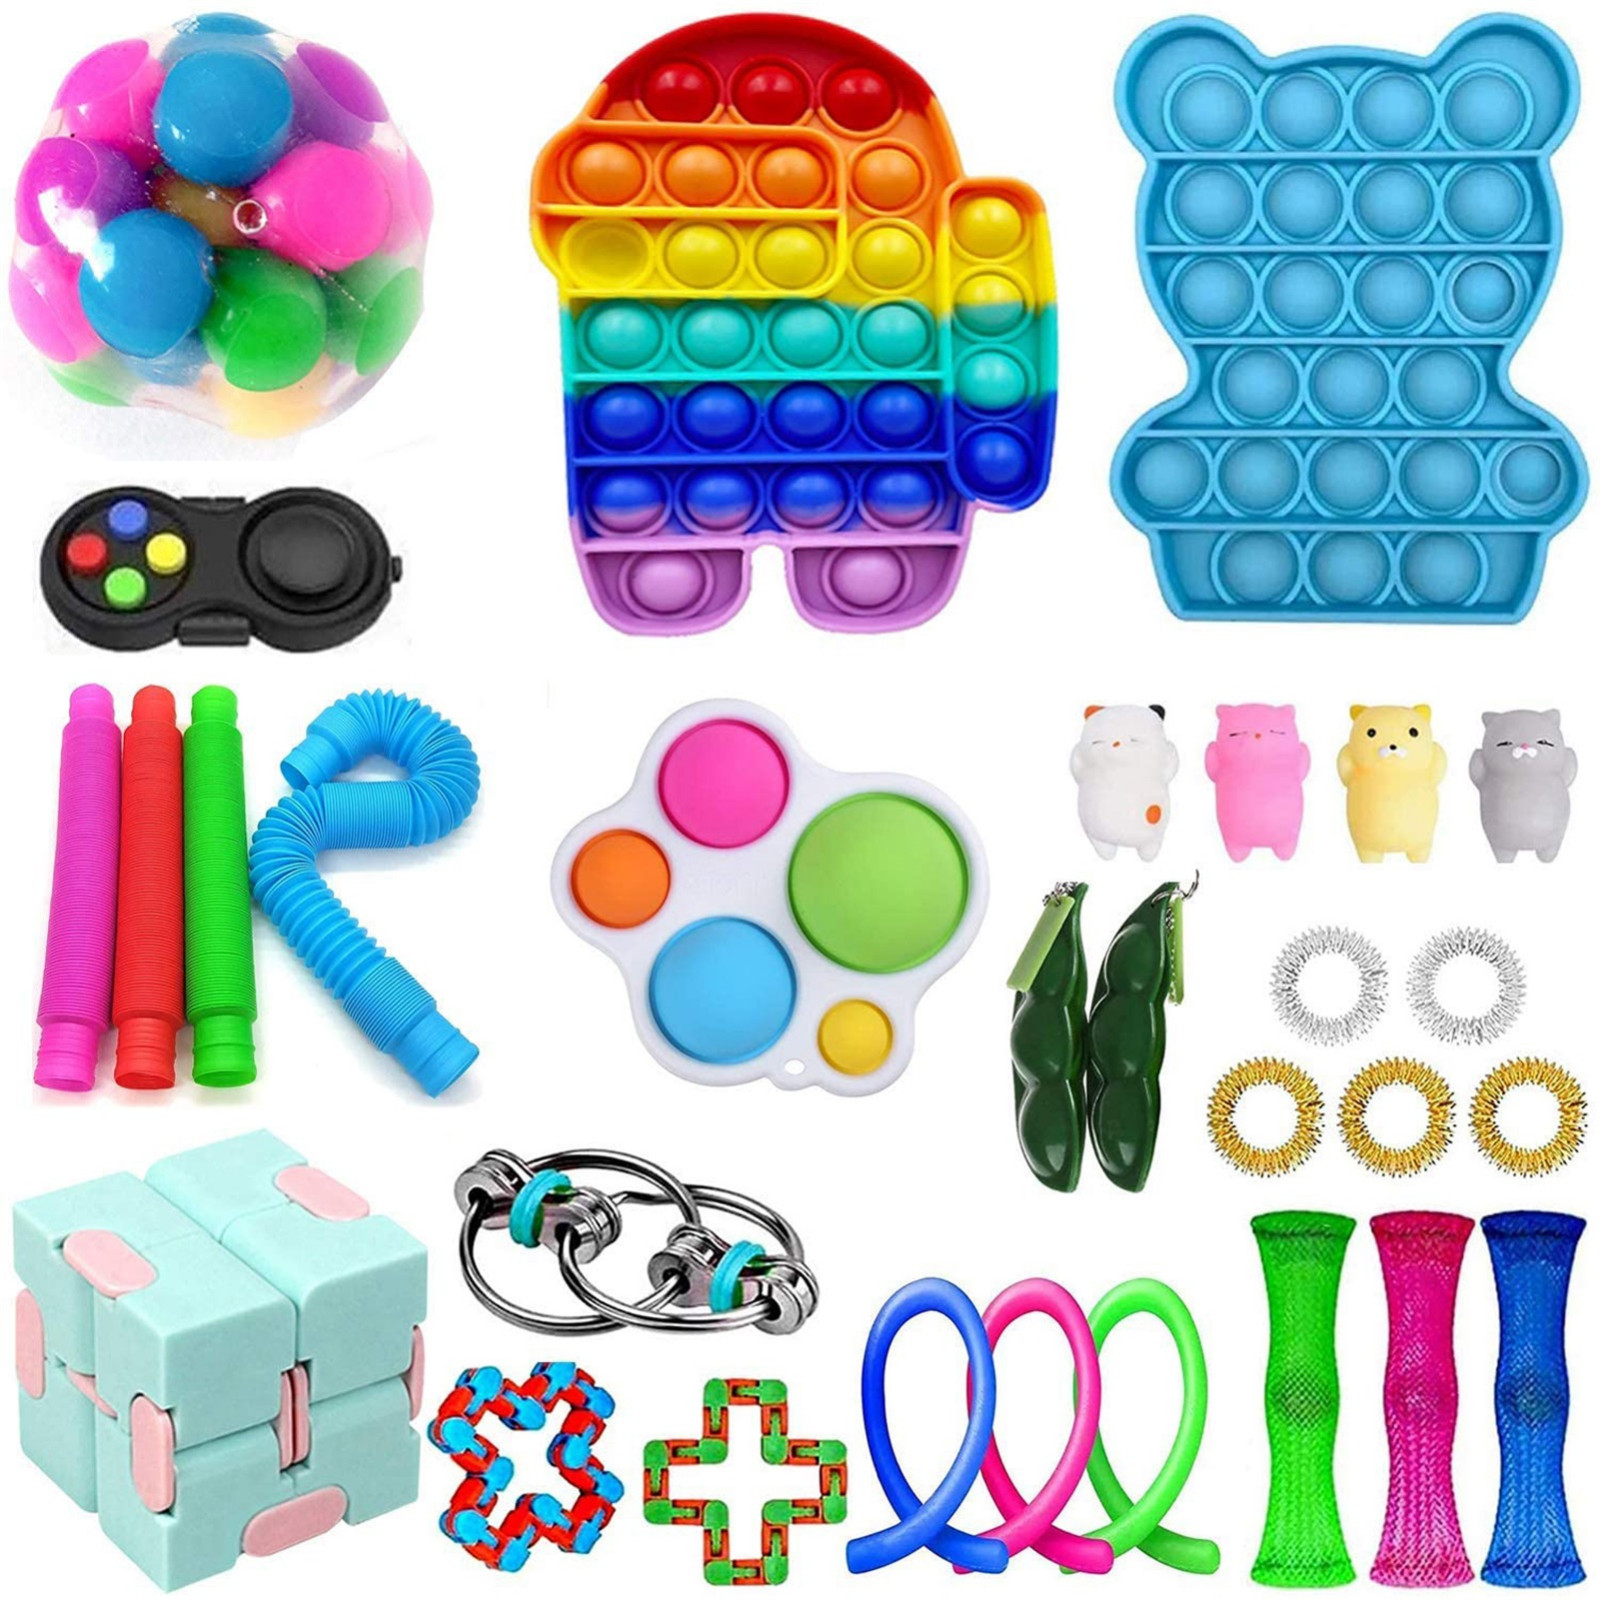 Antistress Fidget Toys Push Bubble Popit Squeeze Sensory Stress Reliever Autism Needs Adult Anxiety Focus Educational Toy Kids img2